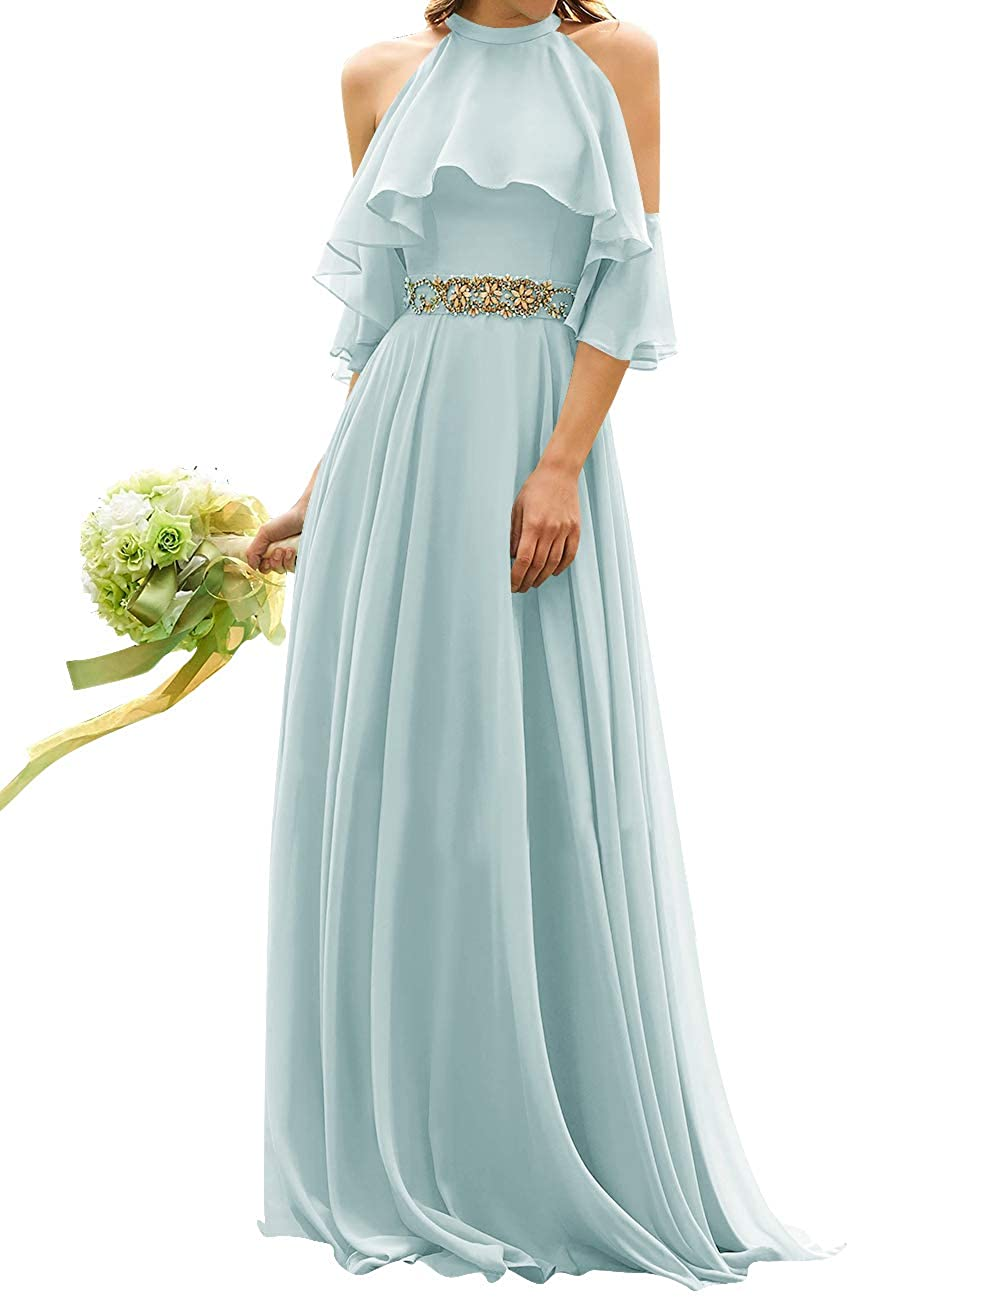 Sky bluee Uther Long Bridesmaid Dress Cold Shoulder Beaded Ruffle Sleeves Wedding Party Dresses